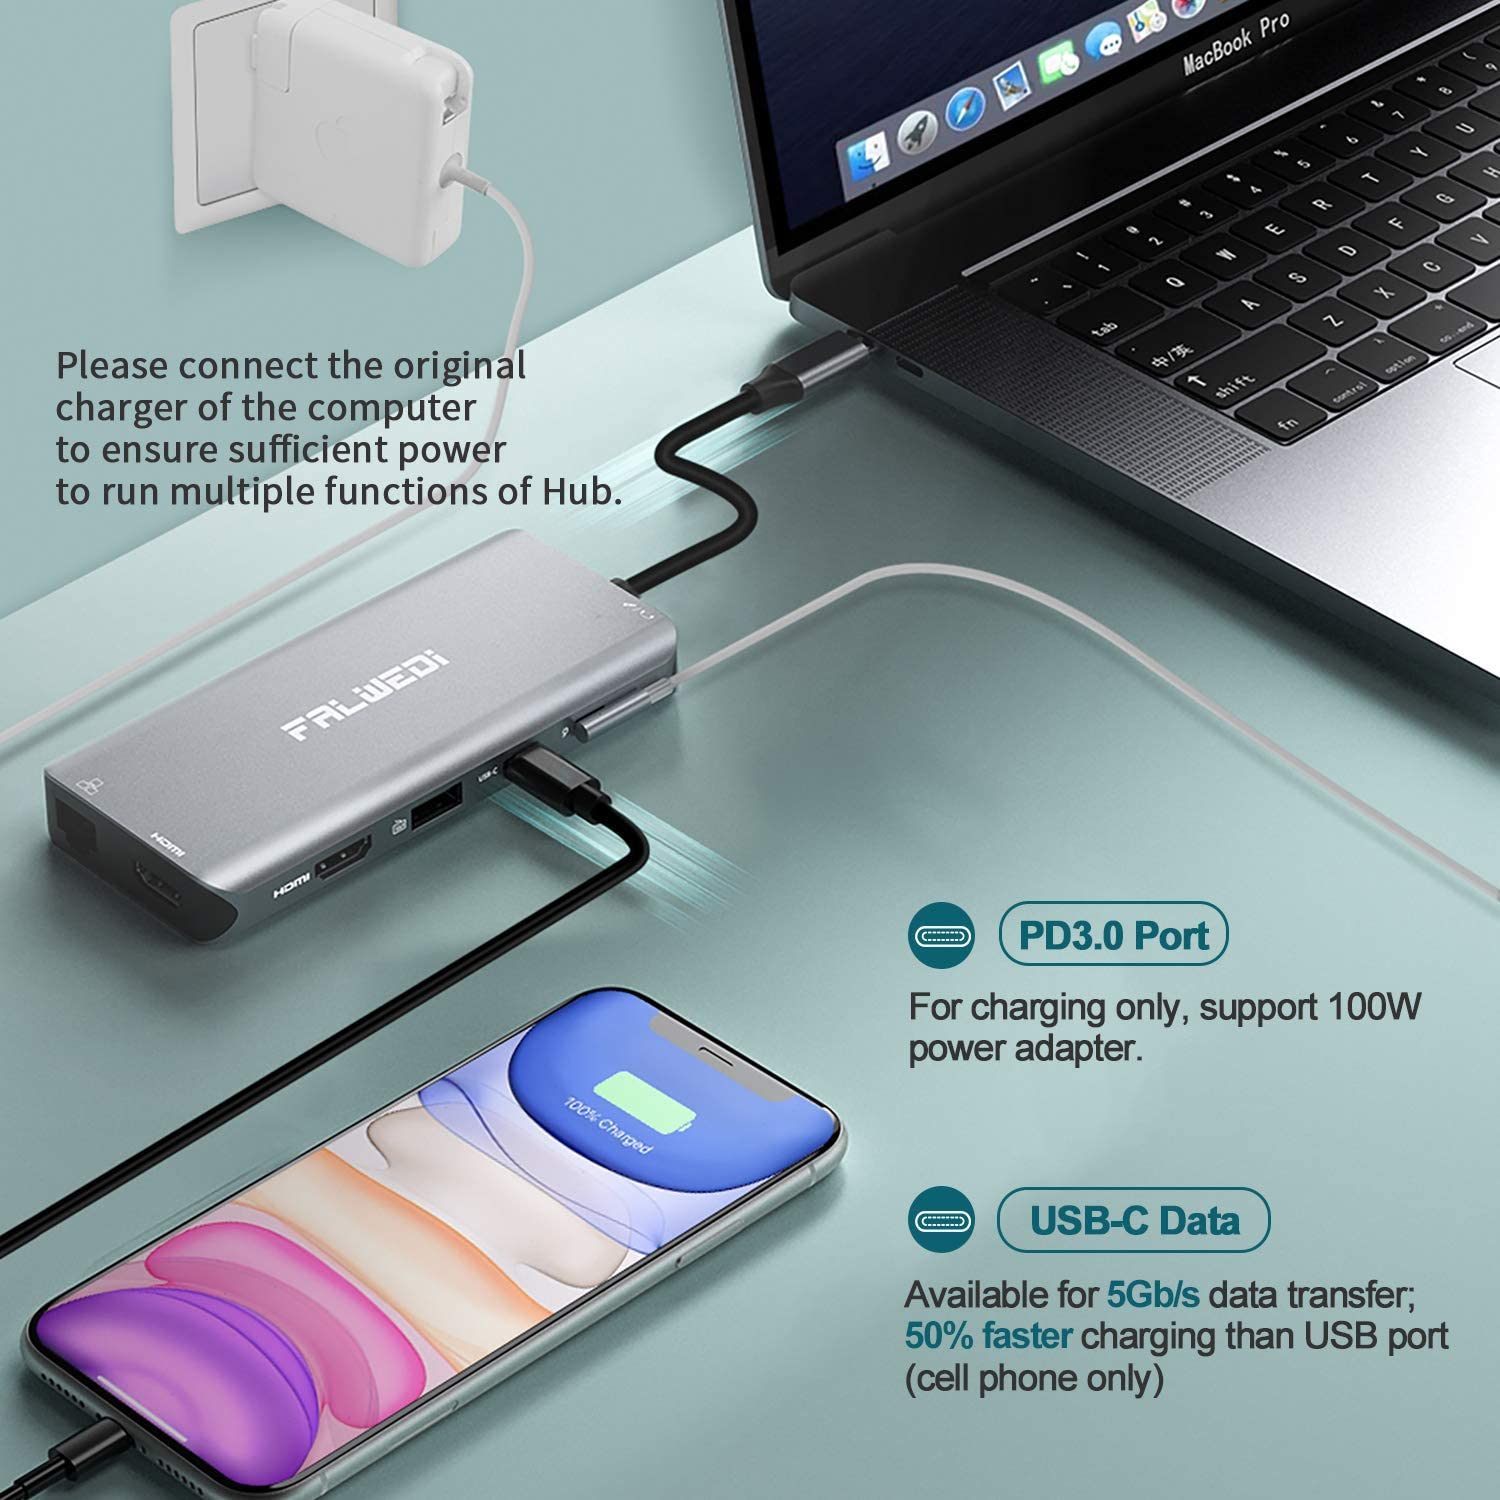 Falwedi Triple Display 12 in 1 USB C Hub with 2 HDMI, PD3.0, Ethernet, SD TF Card Reader, 4 USB-A, USB-C Data Port, Mic/Audio, Type C Adapter Docking Station Compatible for MacBook Air Pro and More